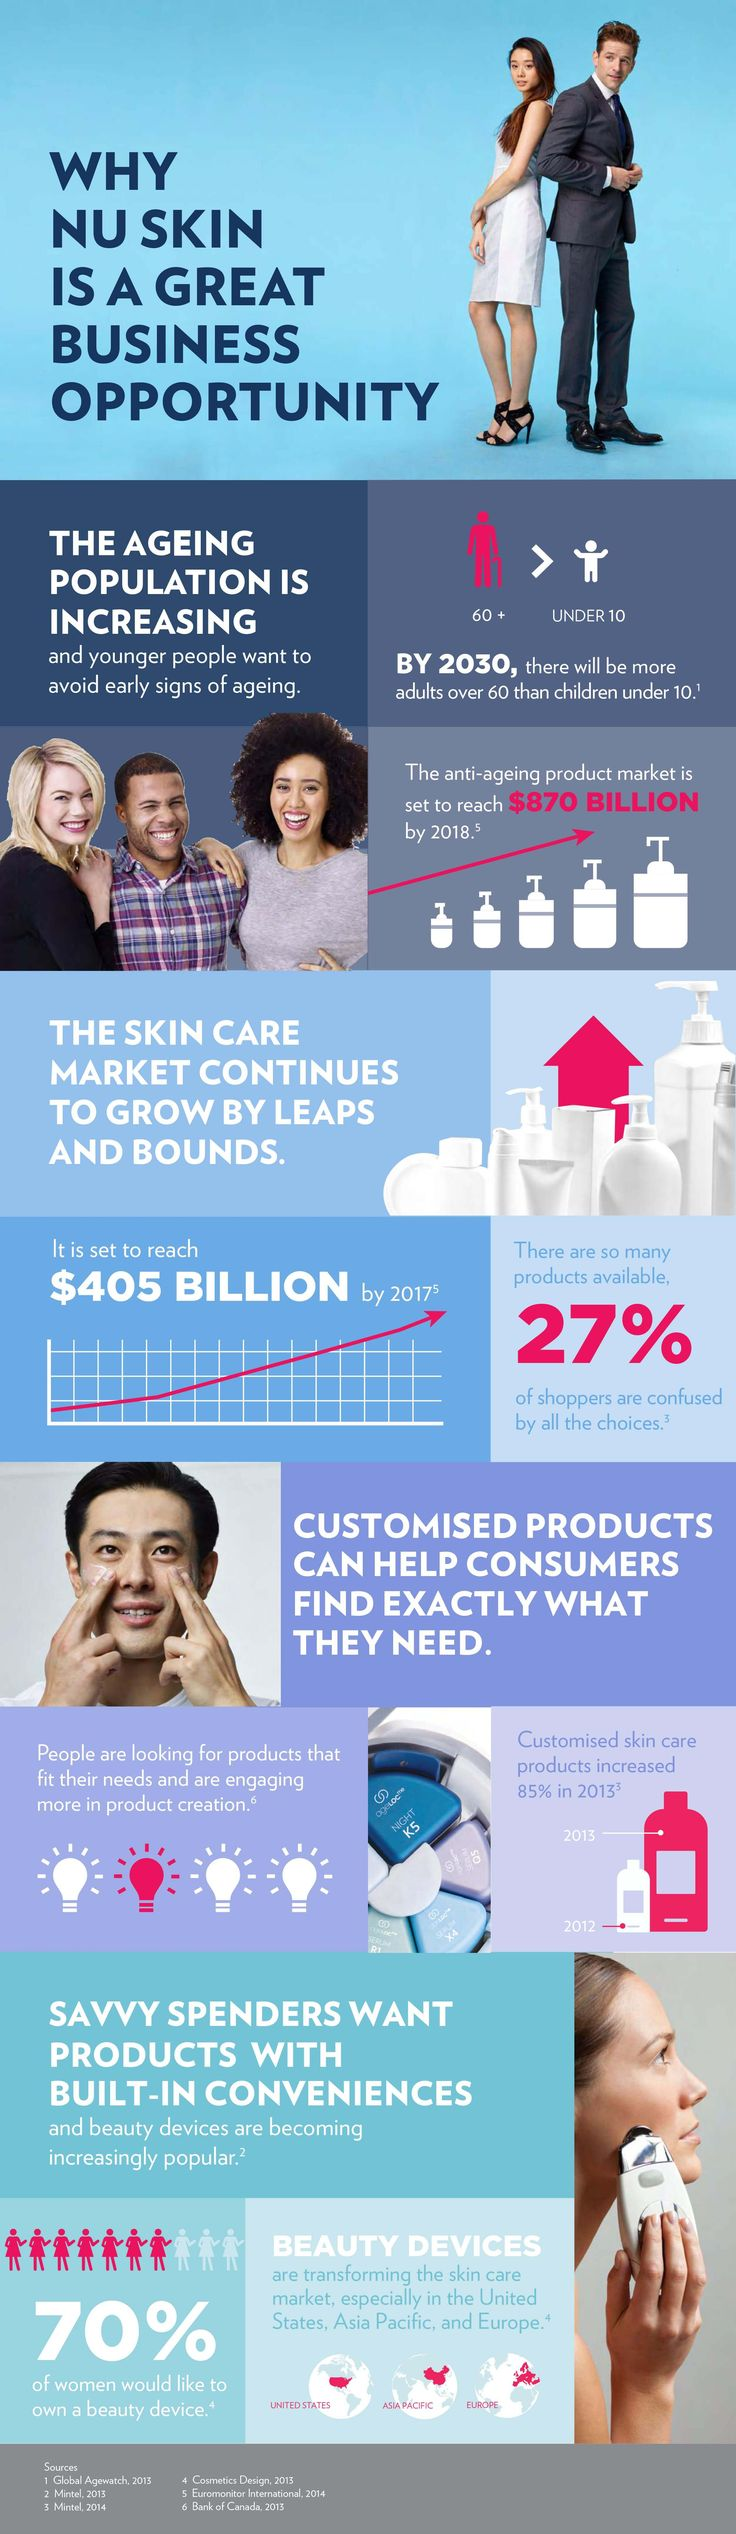 Personalise your skincare, get involved in the fastest growing industry worldwide! #skincare #antiageing #nuskin #businessopportunity #personaliseddevices #healthtechnology